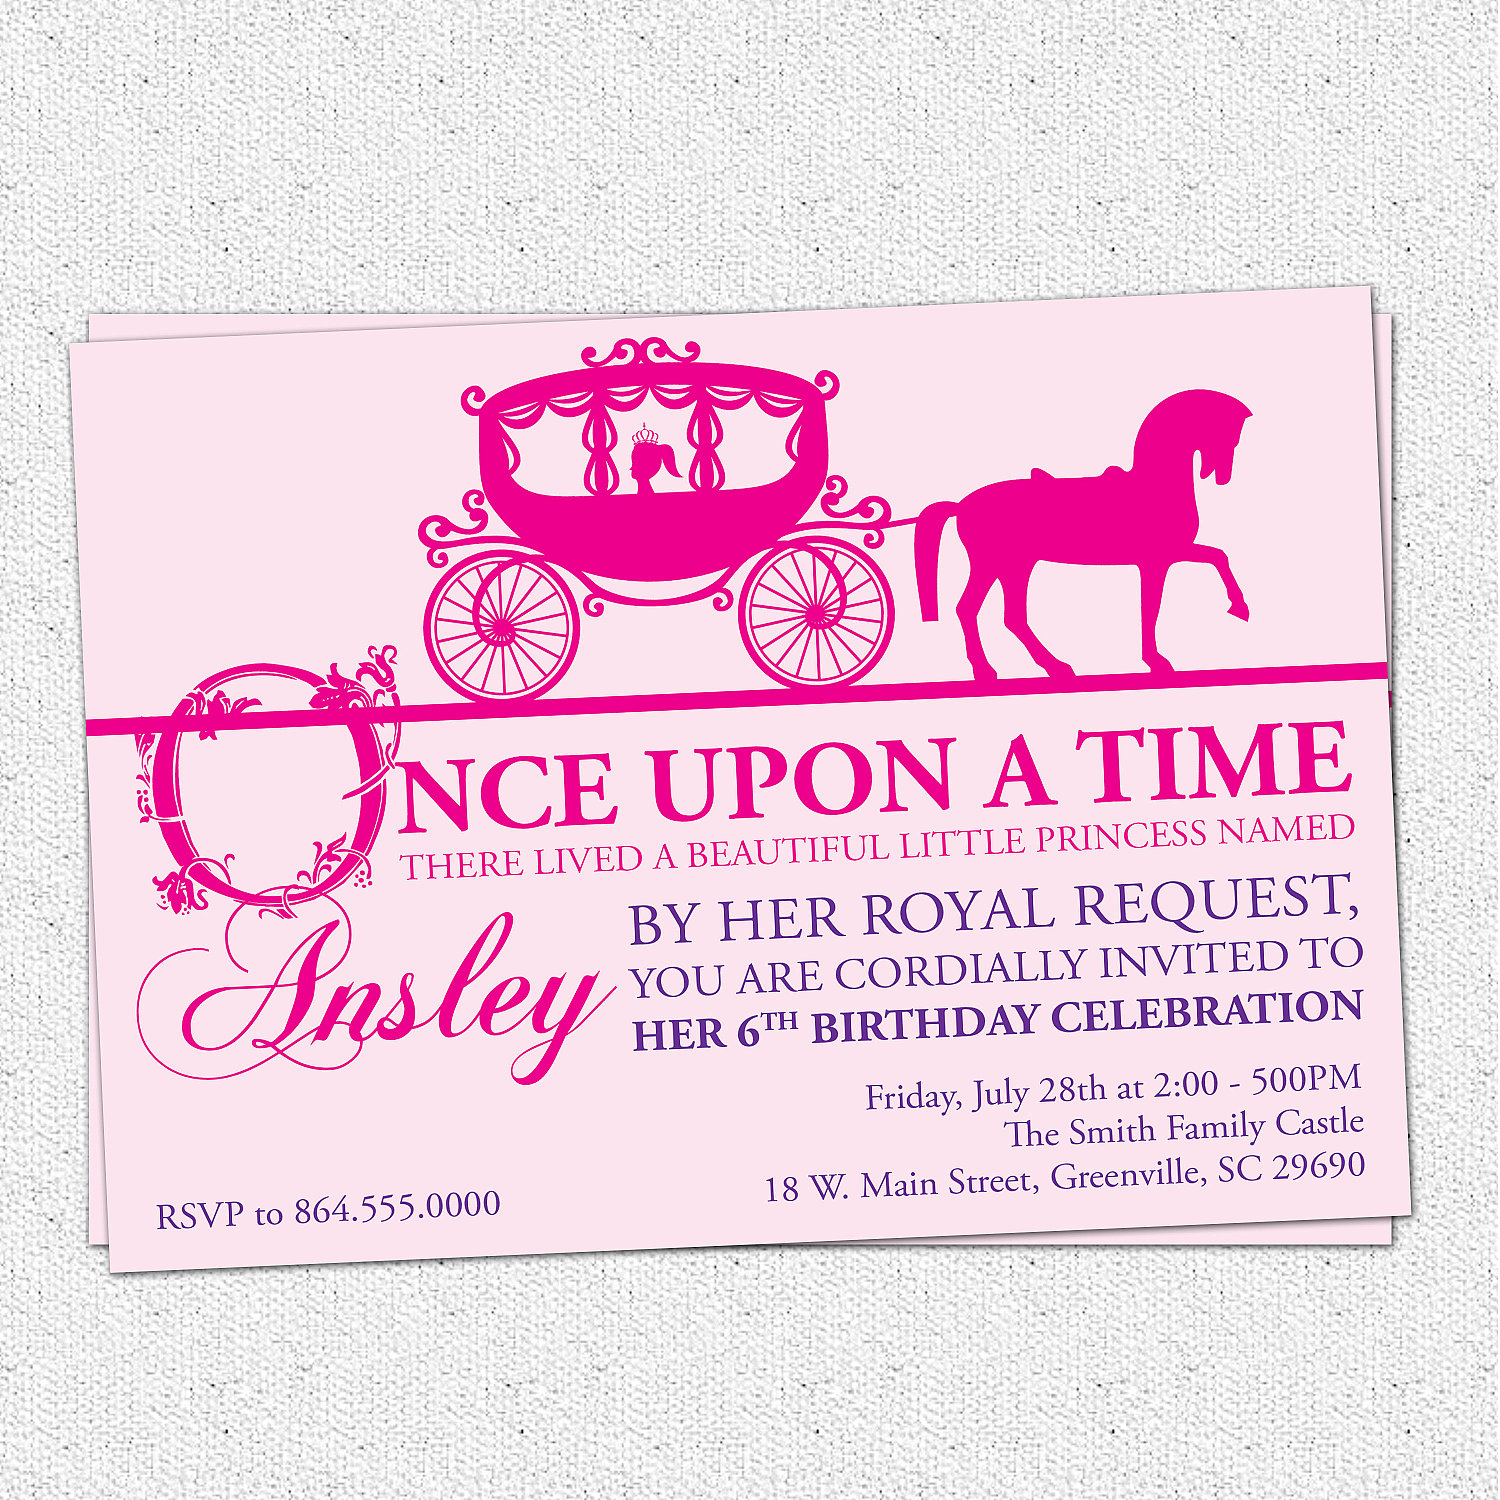 Princess birthday party invitations girl horse drawn carriage princess birthday party invitations girl horse drawn carriage story book pink purple filmwisefo